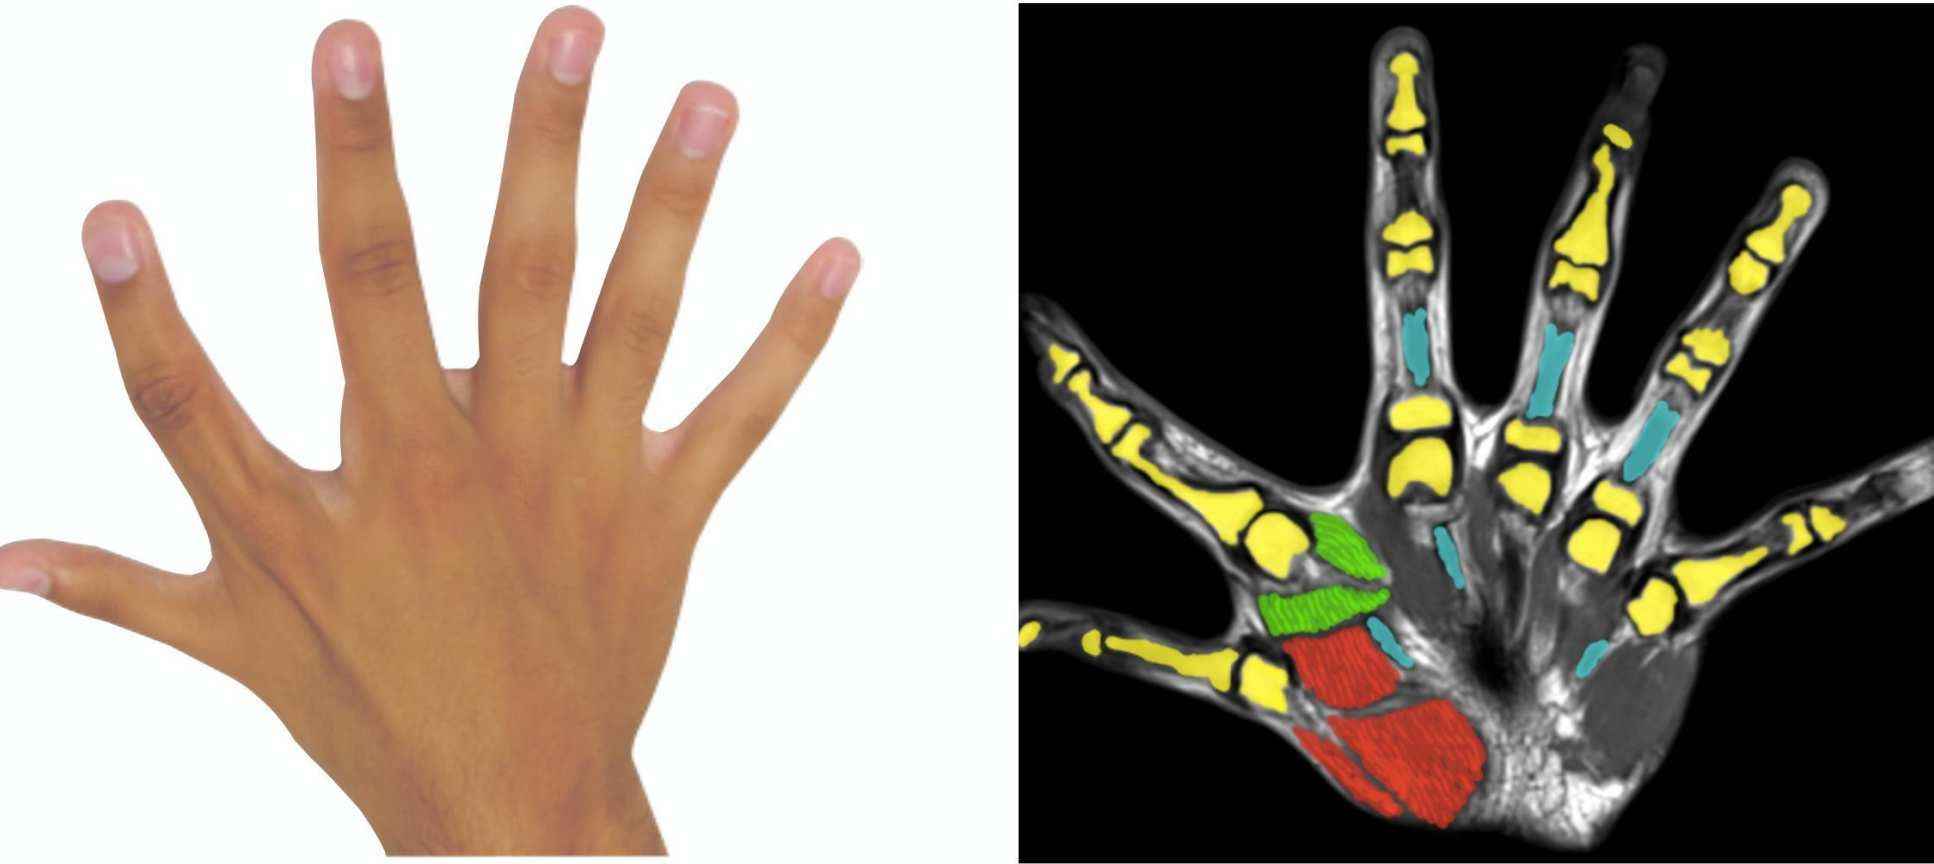 Photo of hand next to its corresponding fMRI image. The extra finger is located between the forefinger and thumb.